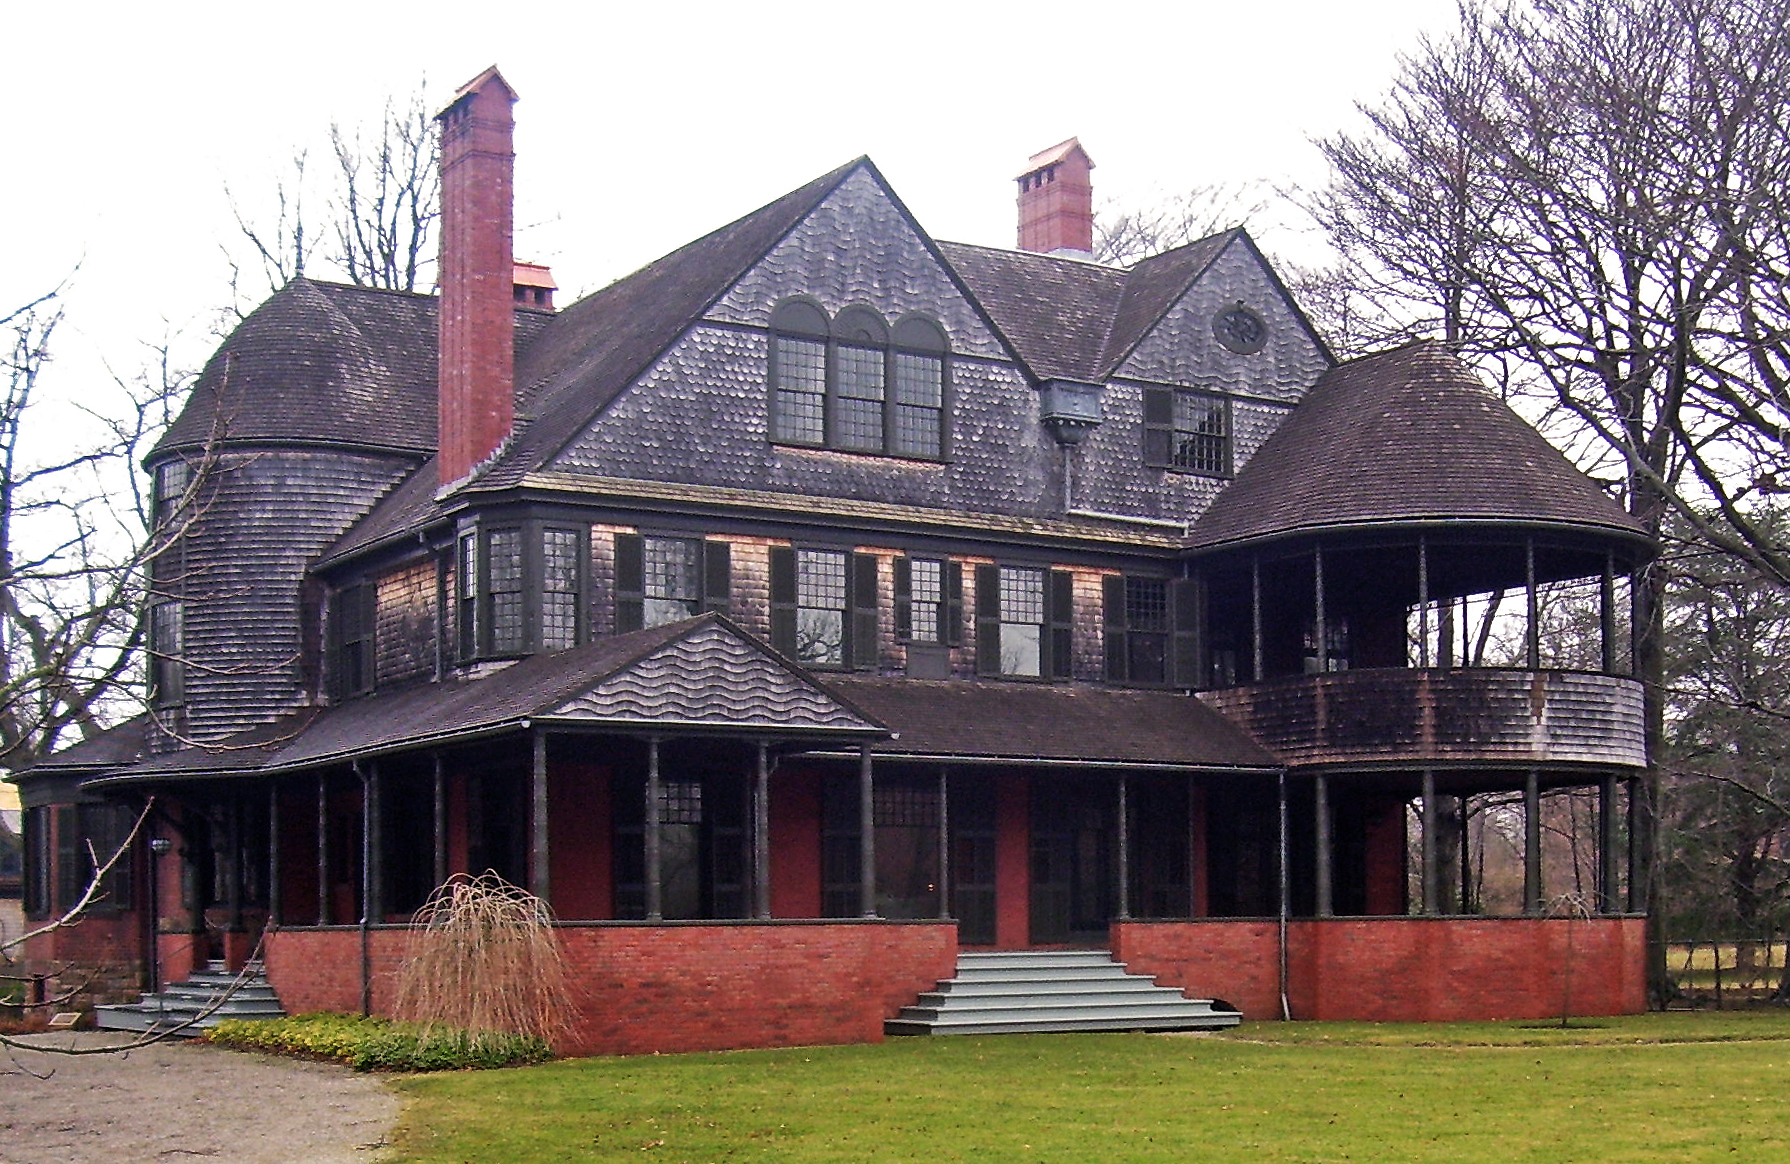 Isaac bell house wikipedia for Shingle style architecture